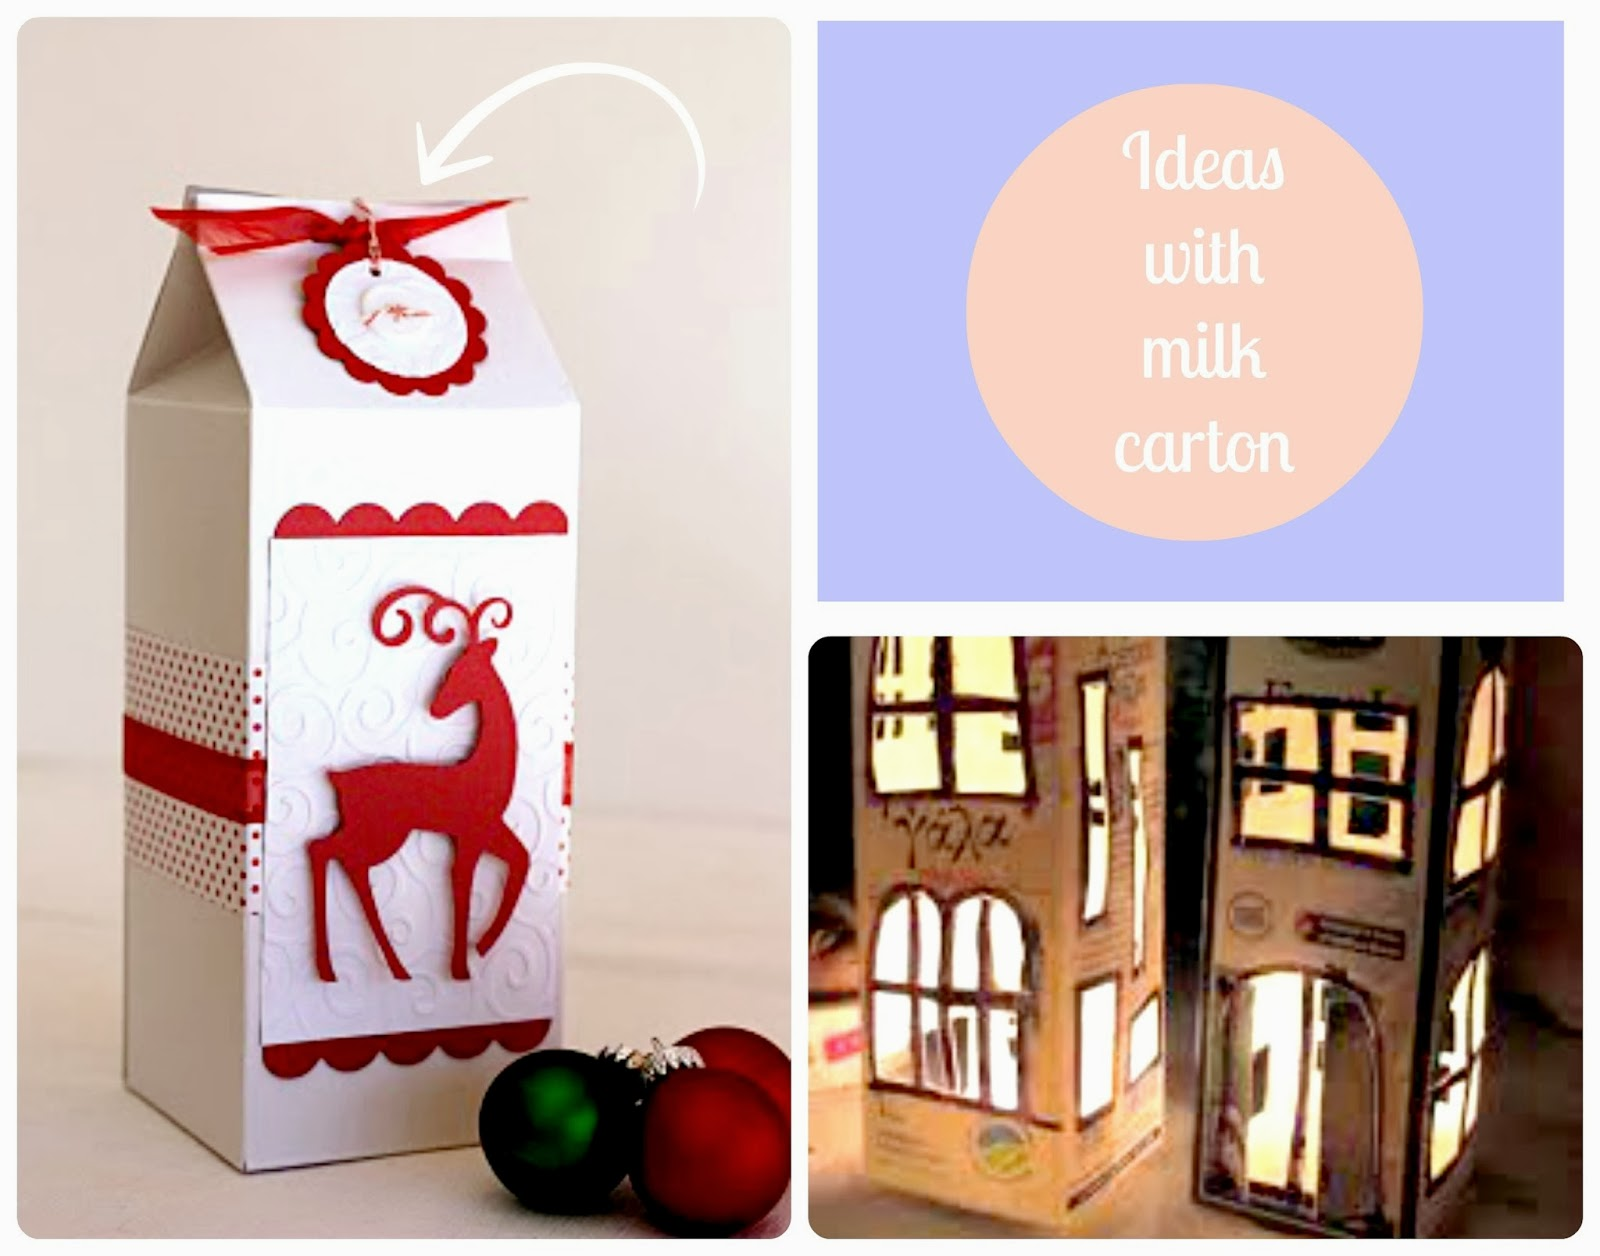 carton milk ideas diy